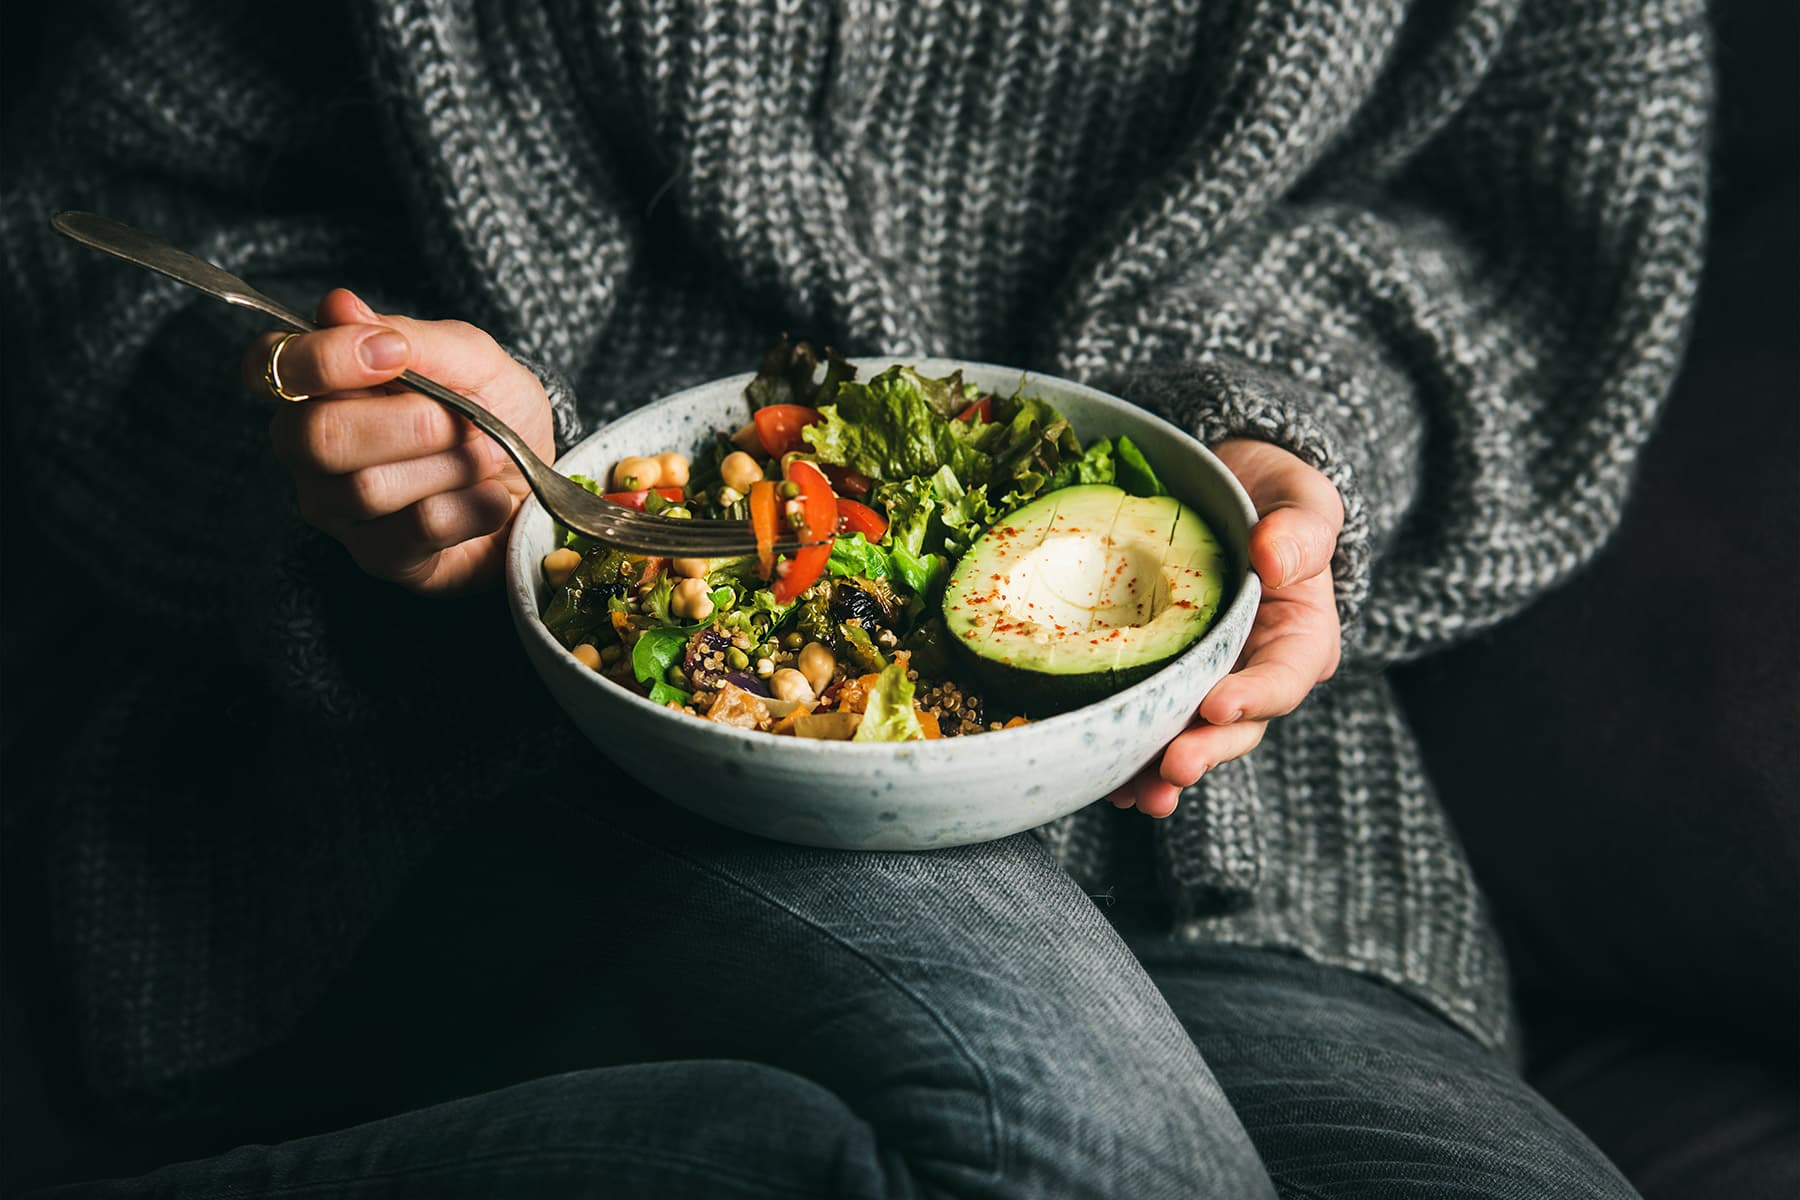 photo of person eating healthy meal